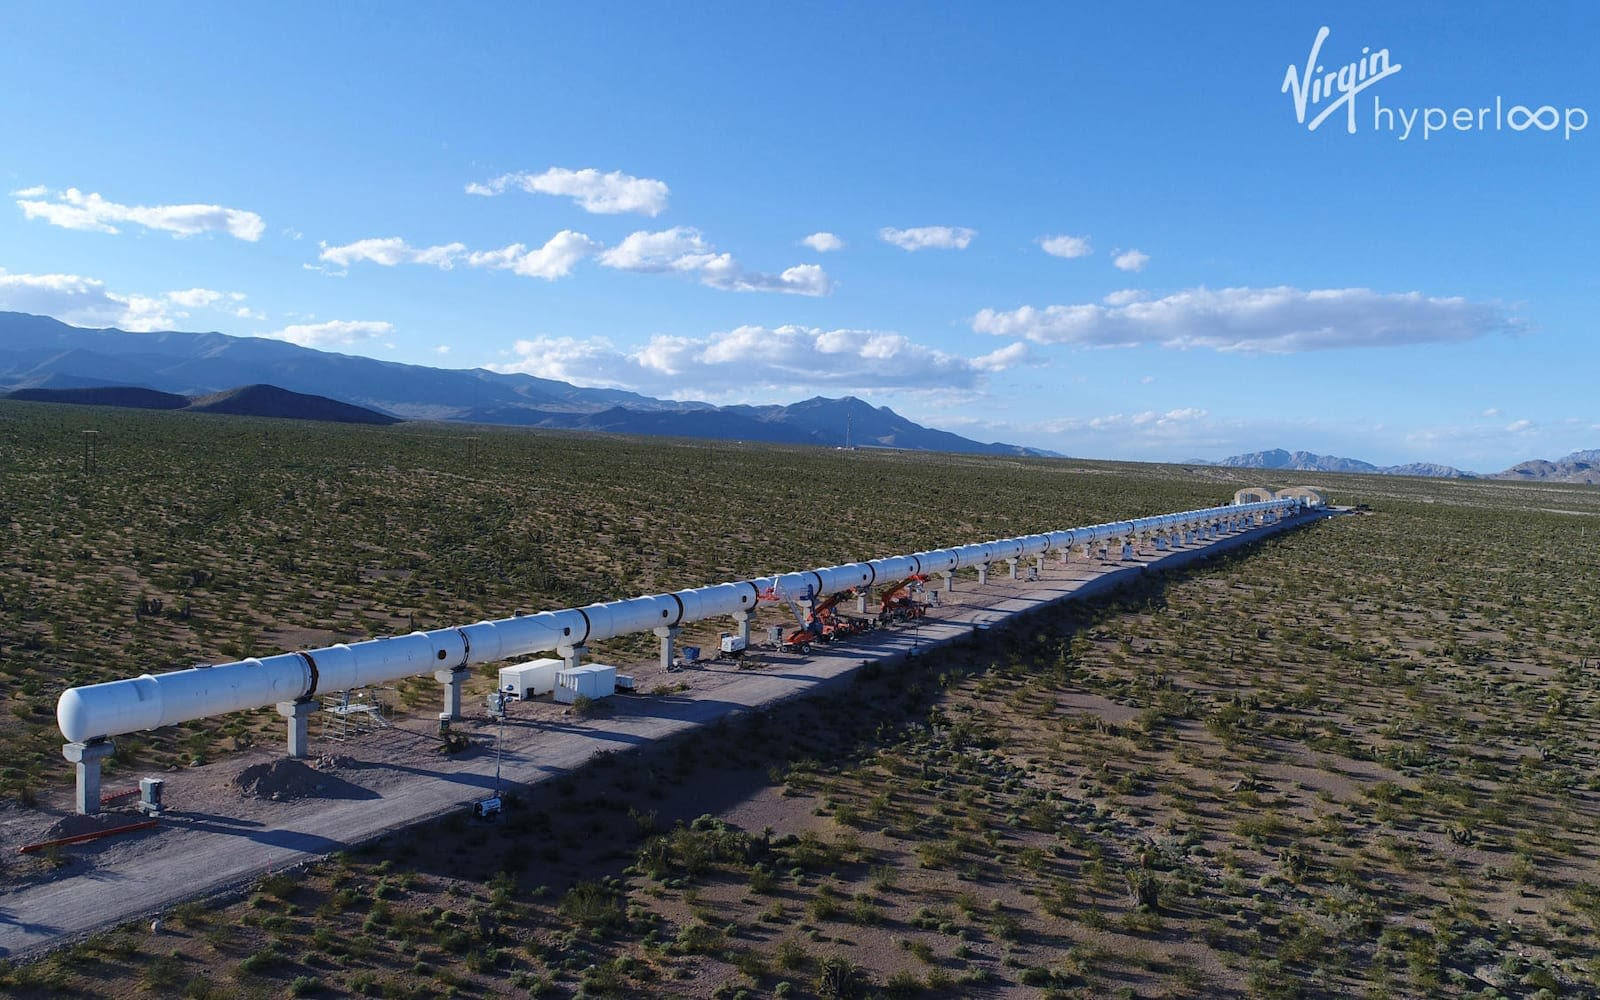 Image from Virgin Hyperloop